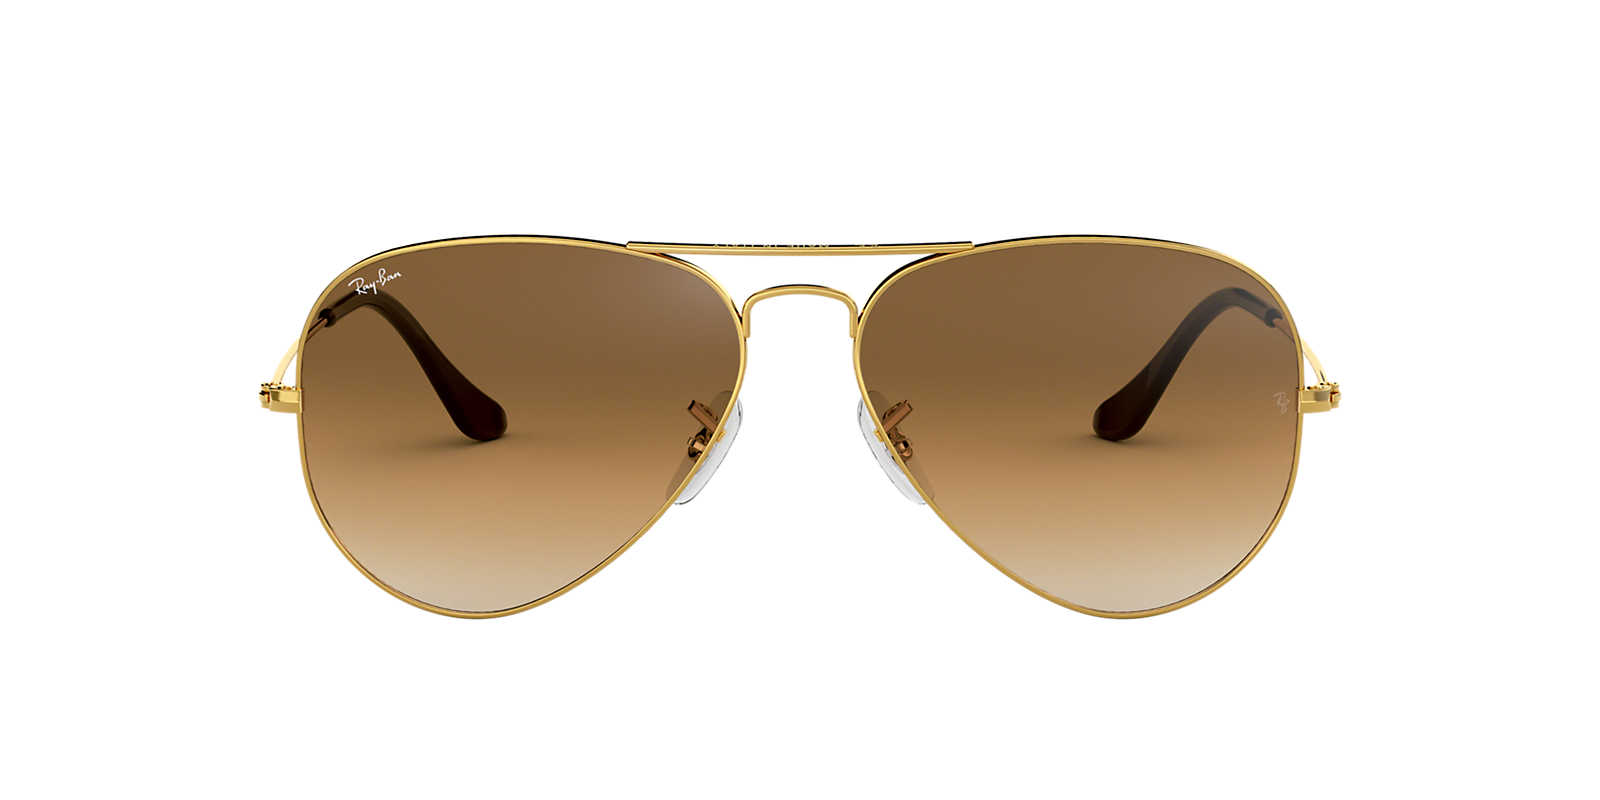 authentic ray ban aviator sunglasses  ray ban gold shiny rb3025 58 original aviator brown lenses 58mm